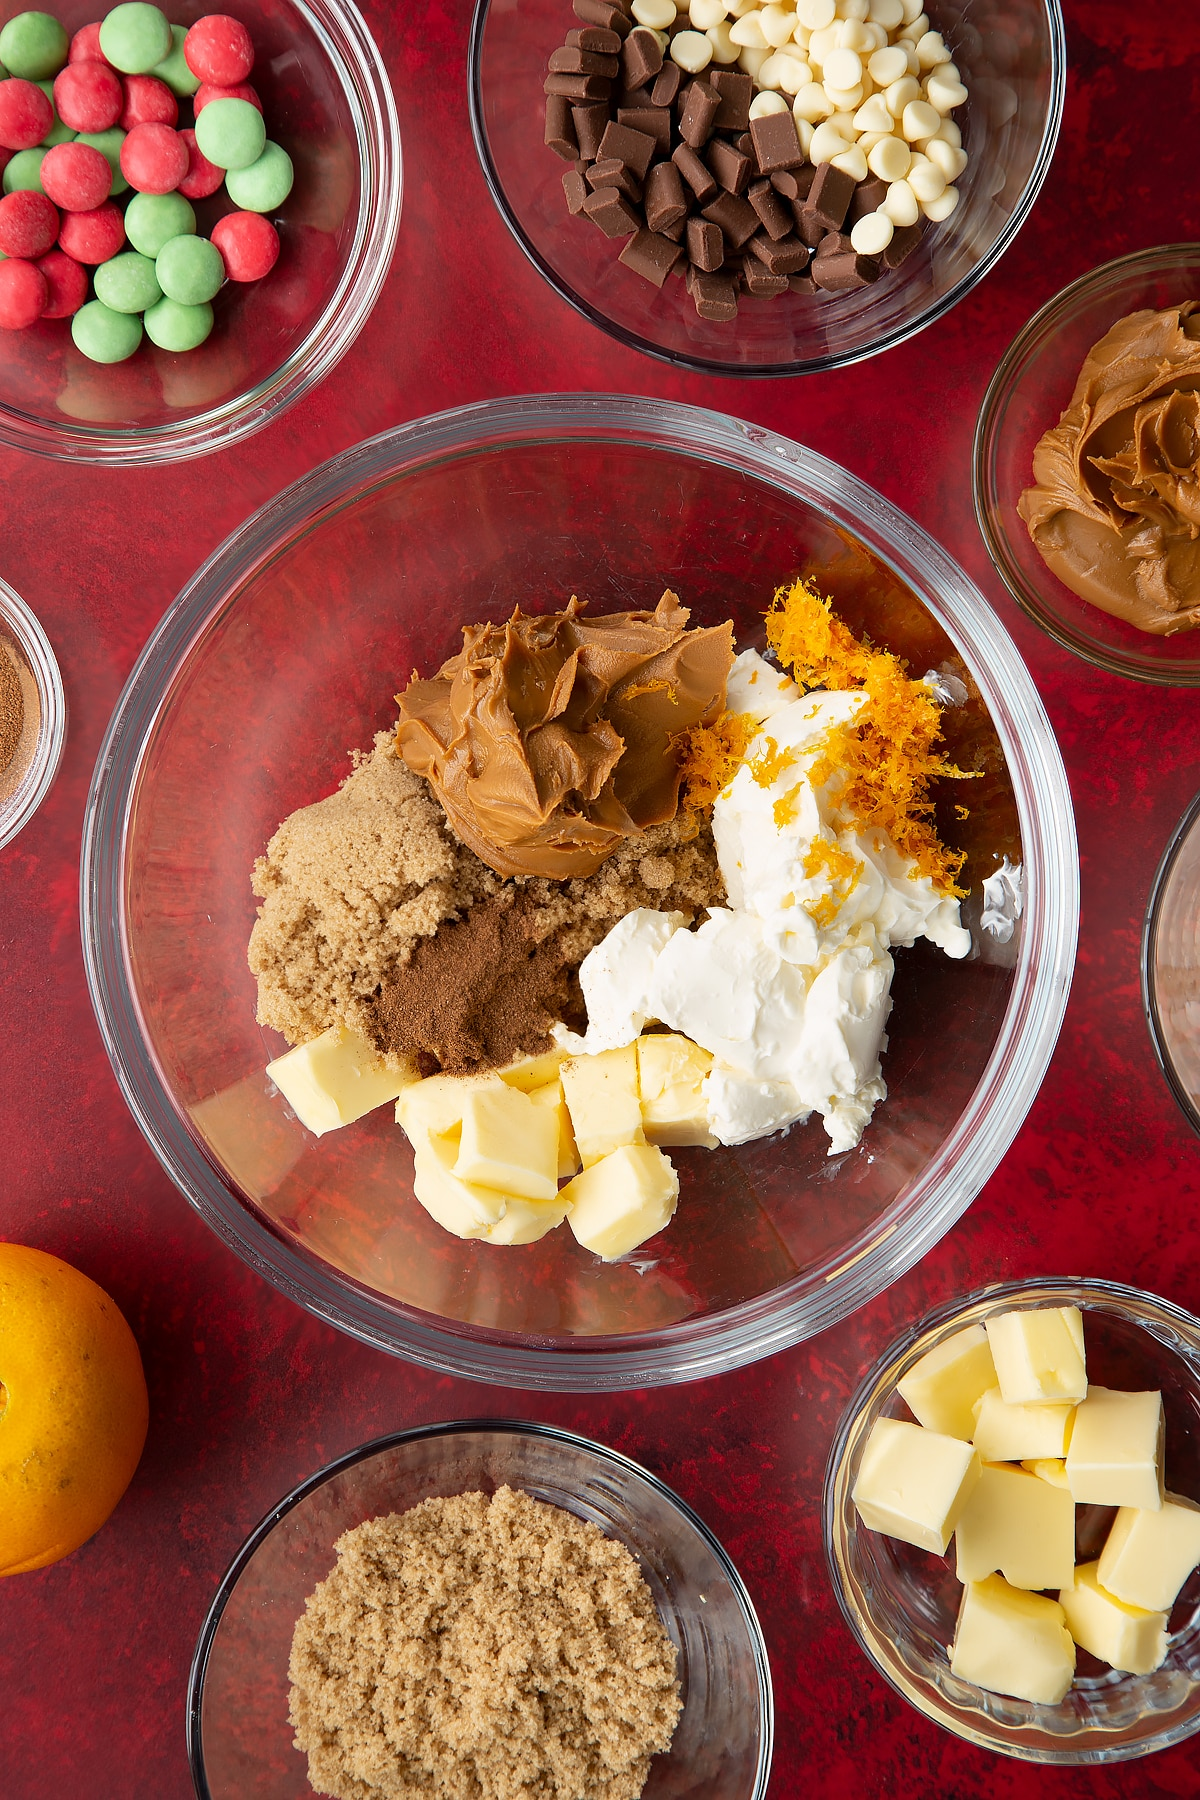 Butter, cream cheese, Biscoff spread, sugar, orange zest and cinnamon in a mixing bowl.Ingredients to make Christmas cookie dip surround the bowl.